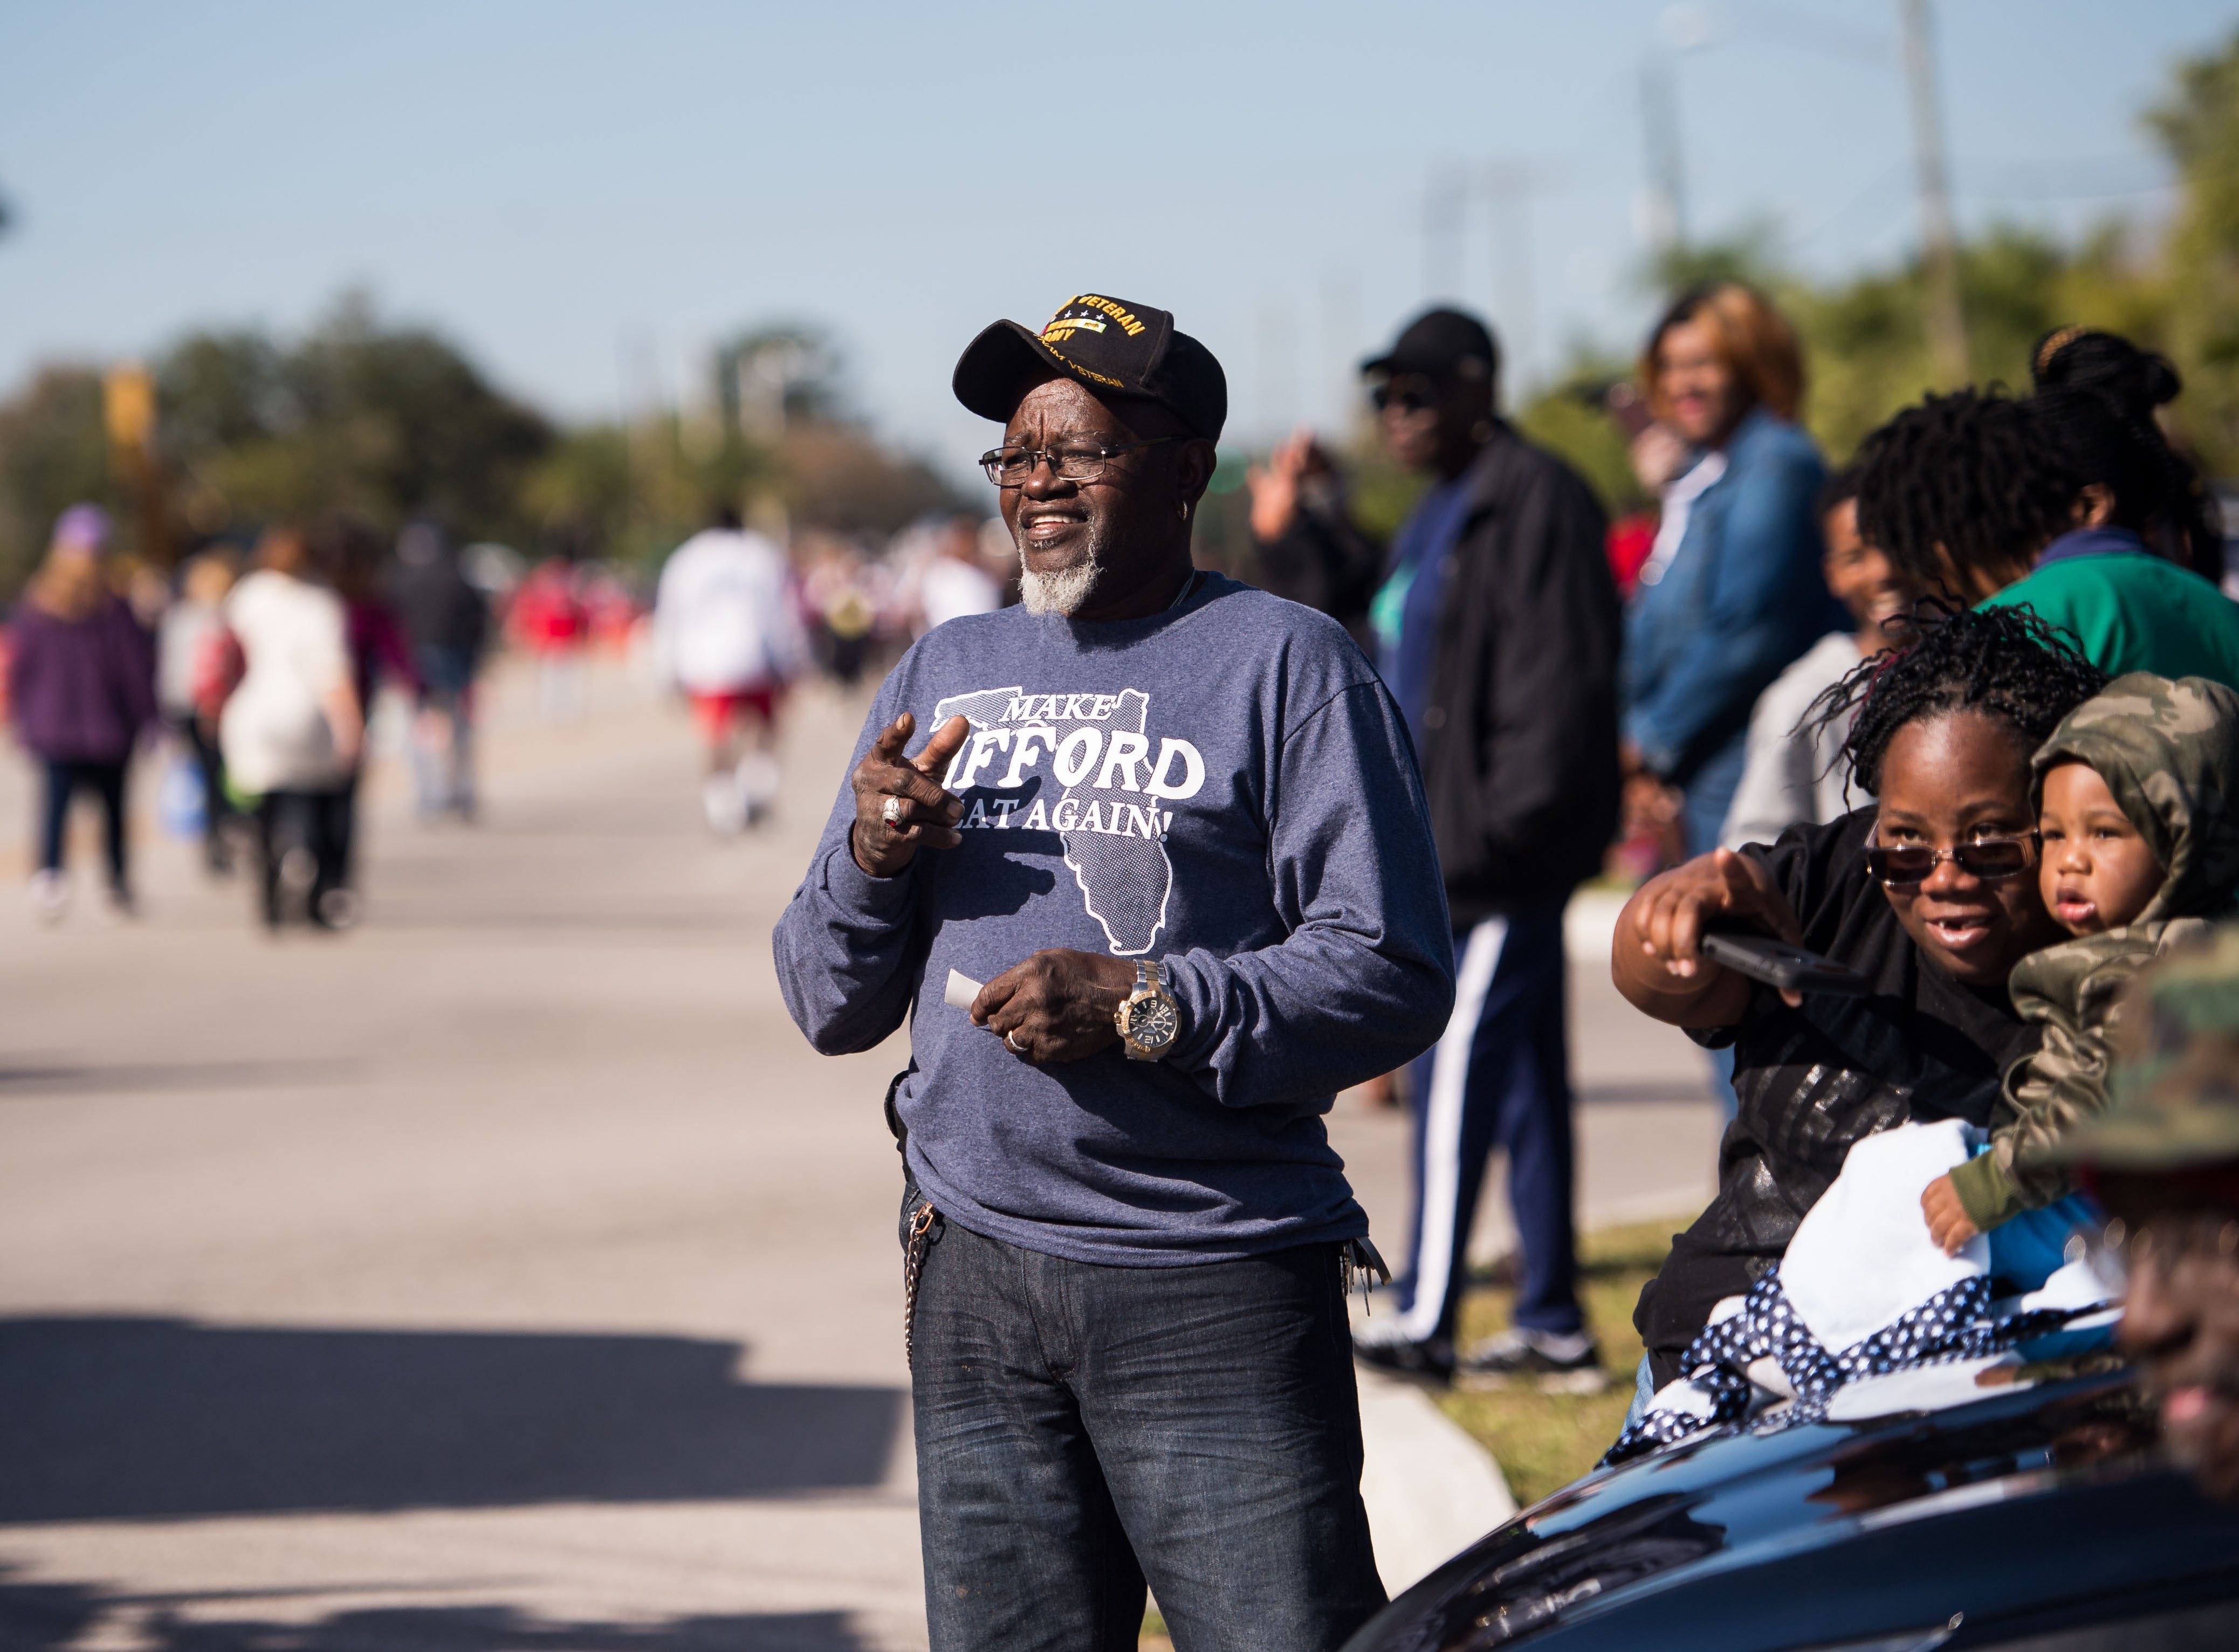 The 2019 MLK Parade, organized by the Dr. Martin Luther King Jr. Birthday Committee of Indian River County, proceeds through Gifford on Monday, Jan. 21, 2019, ending in a festival at Gifford Park.